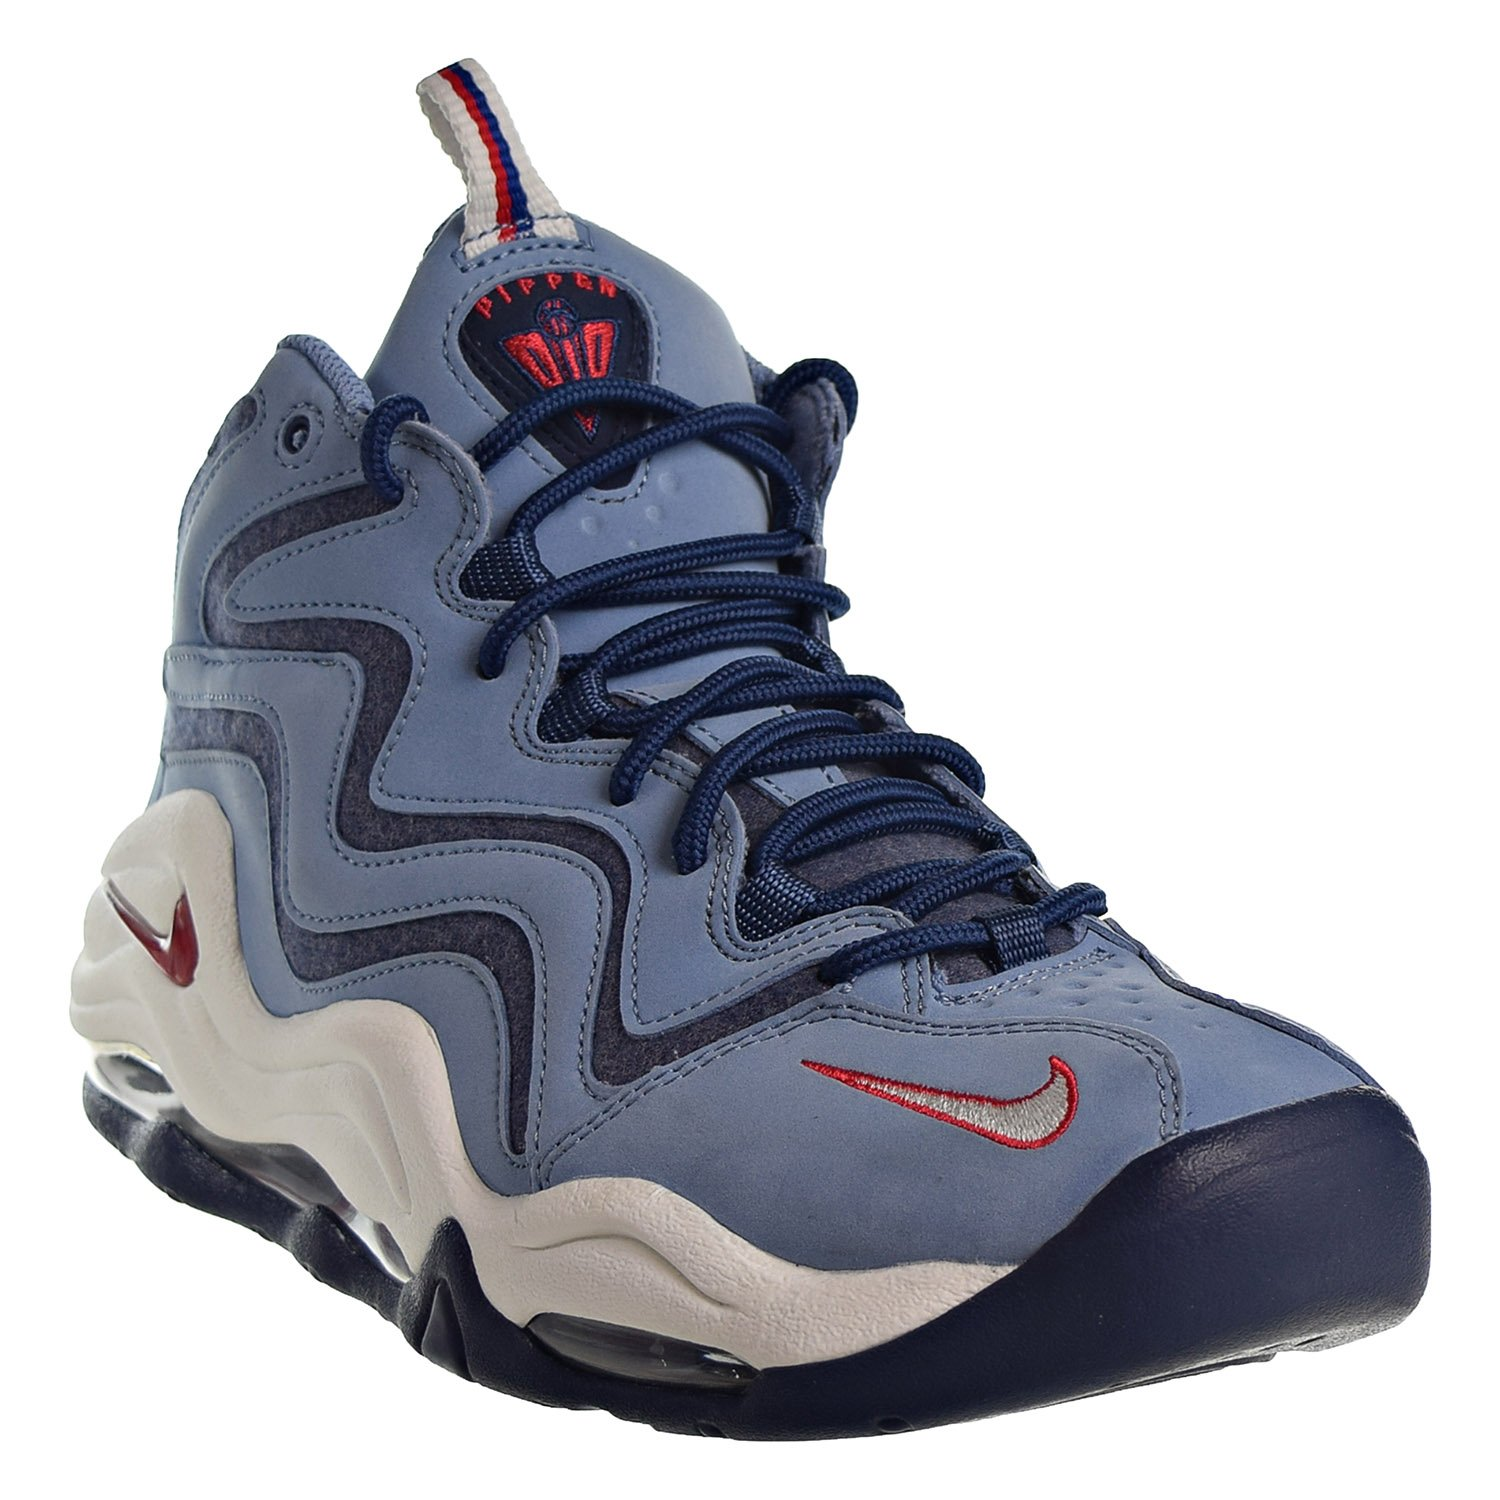 los angeles f47e1 8da34 Amazon.com   Nike Air Pippen Men s Basketball Shoes Work Blue University  Red 325001-403 (7.5 D(M) US)   Shoes